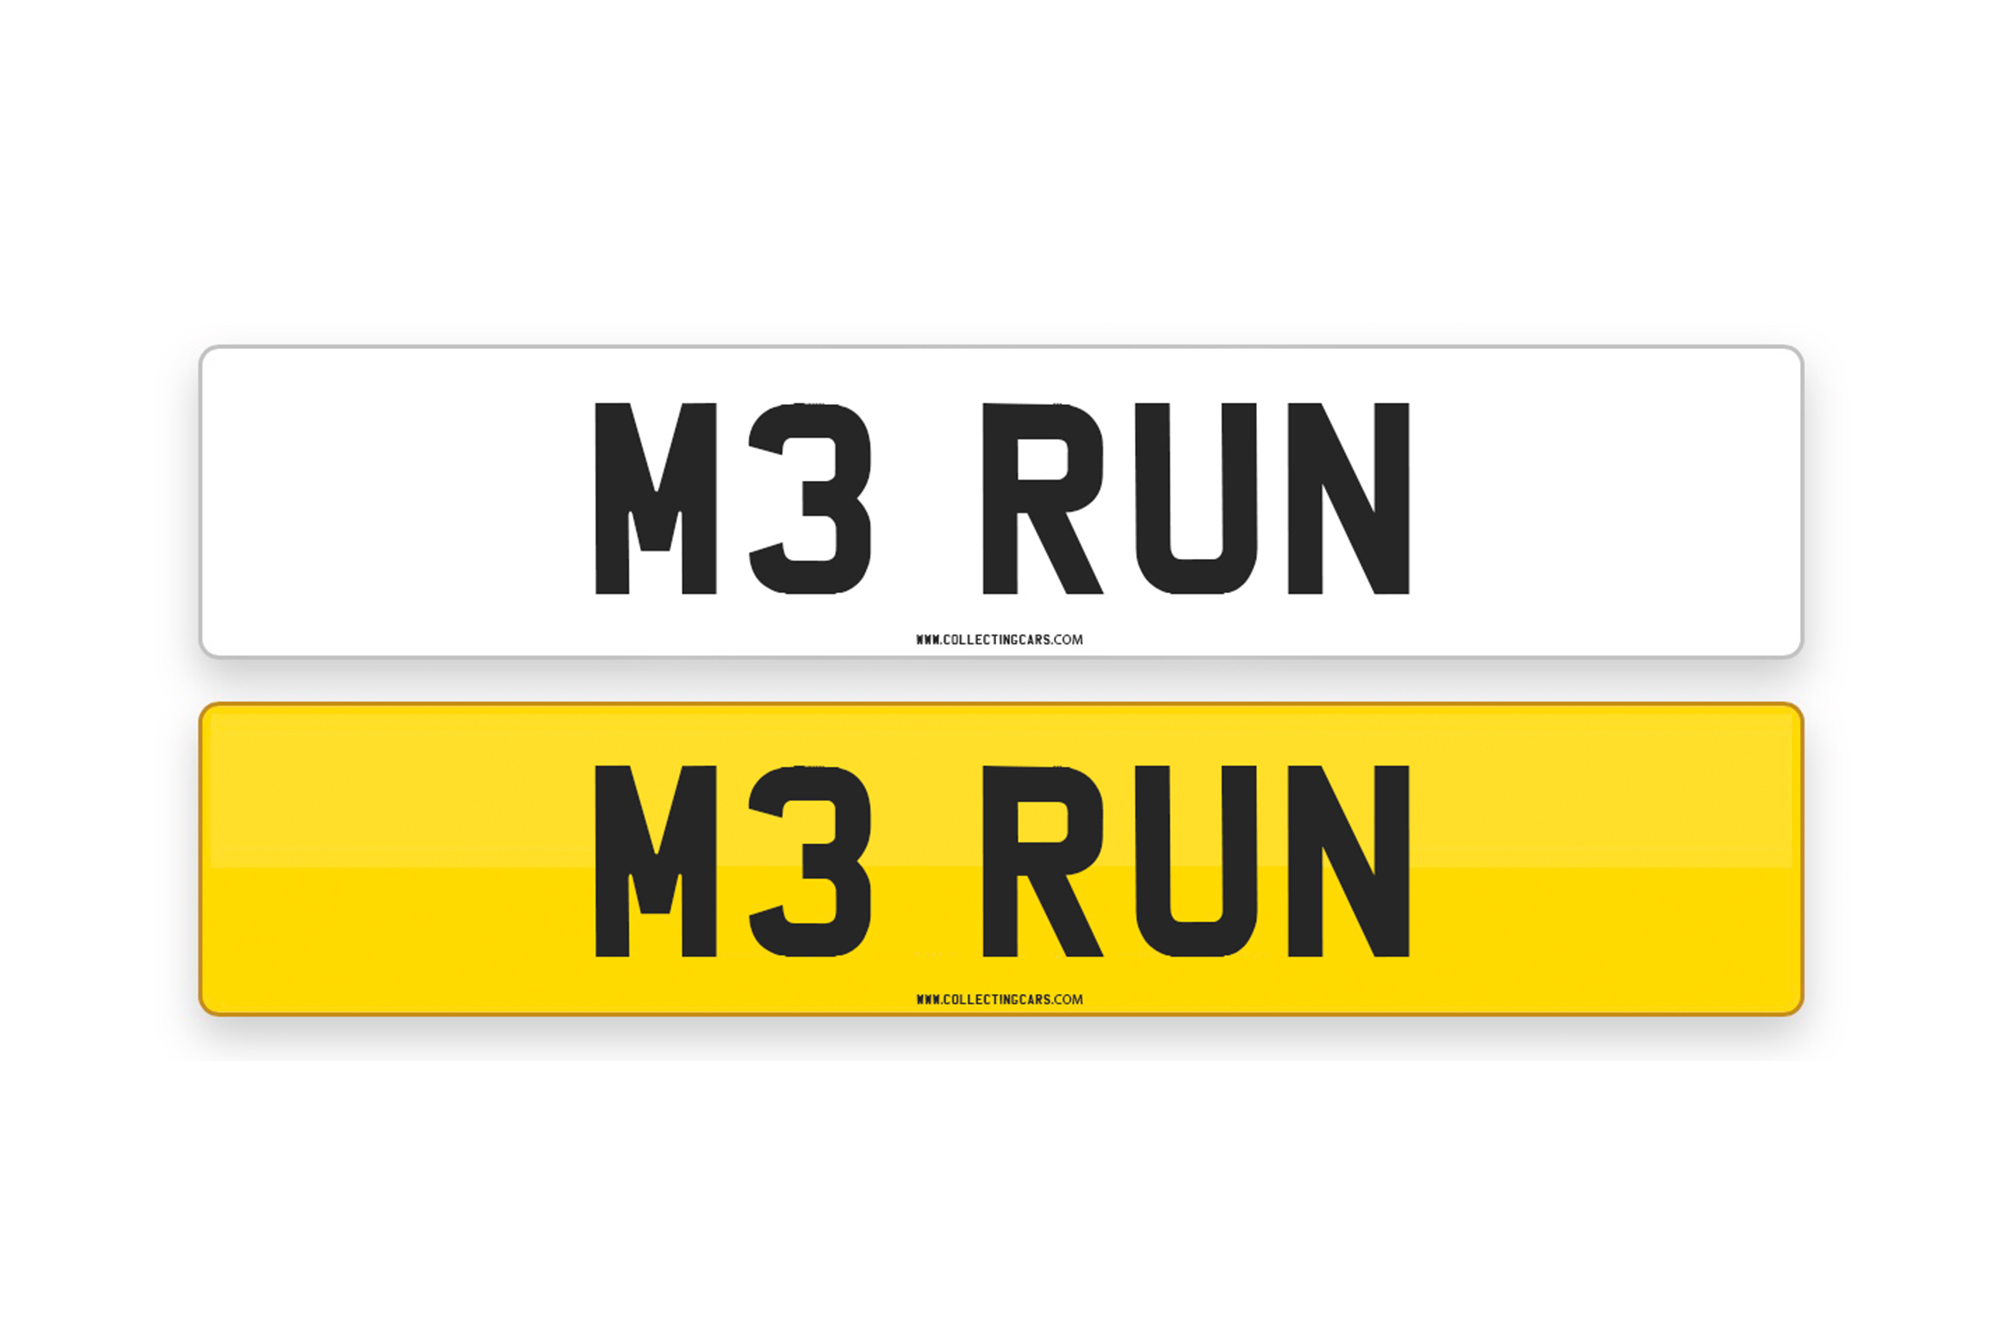 'M3 RUN' - NUMBER PLATE